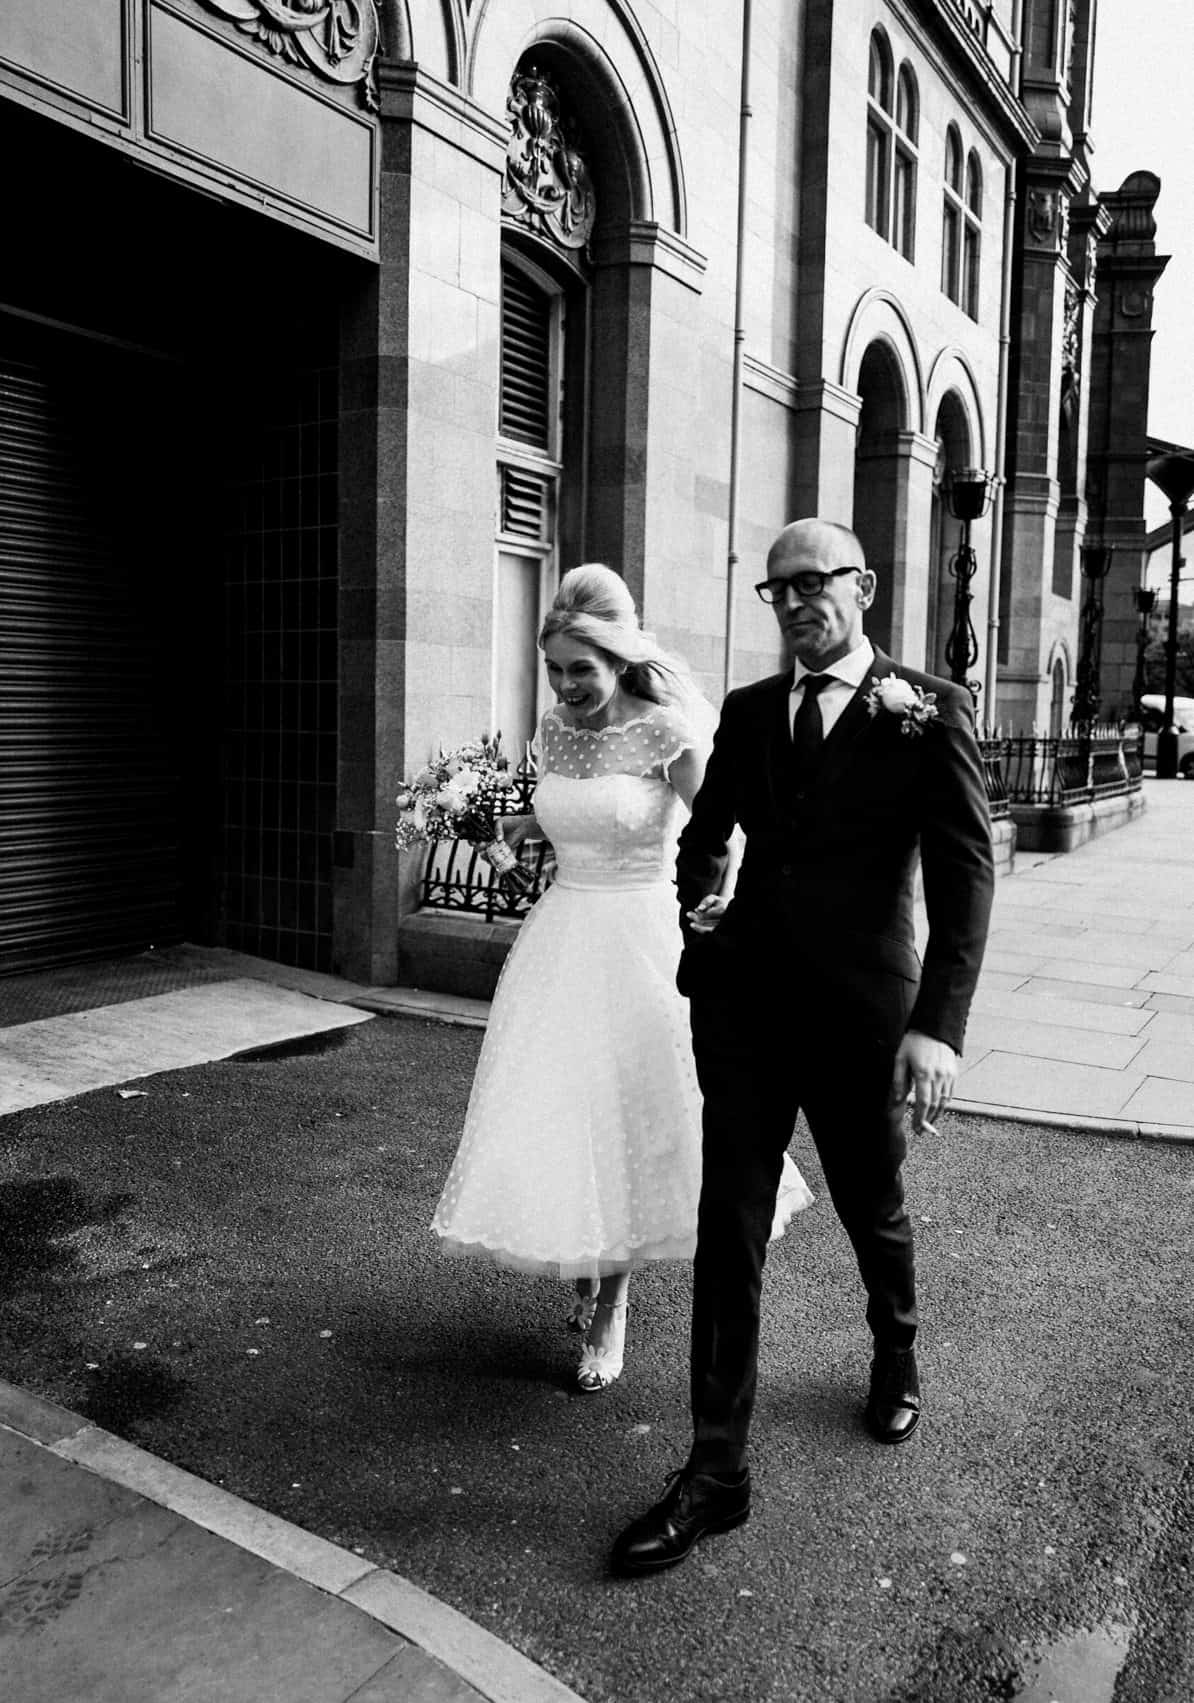 Bride and groom walking through manchester at night